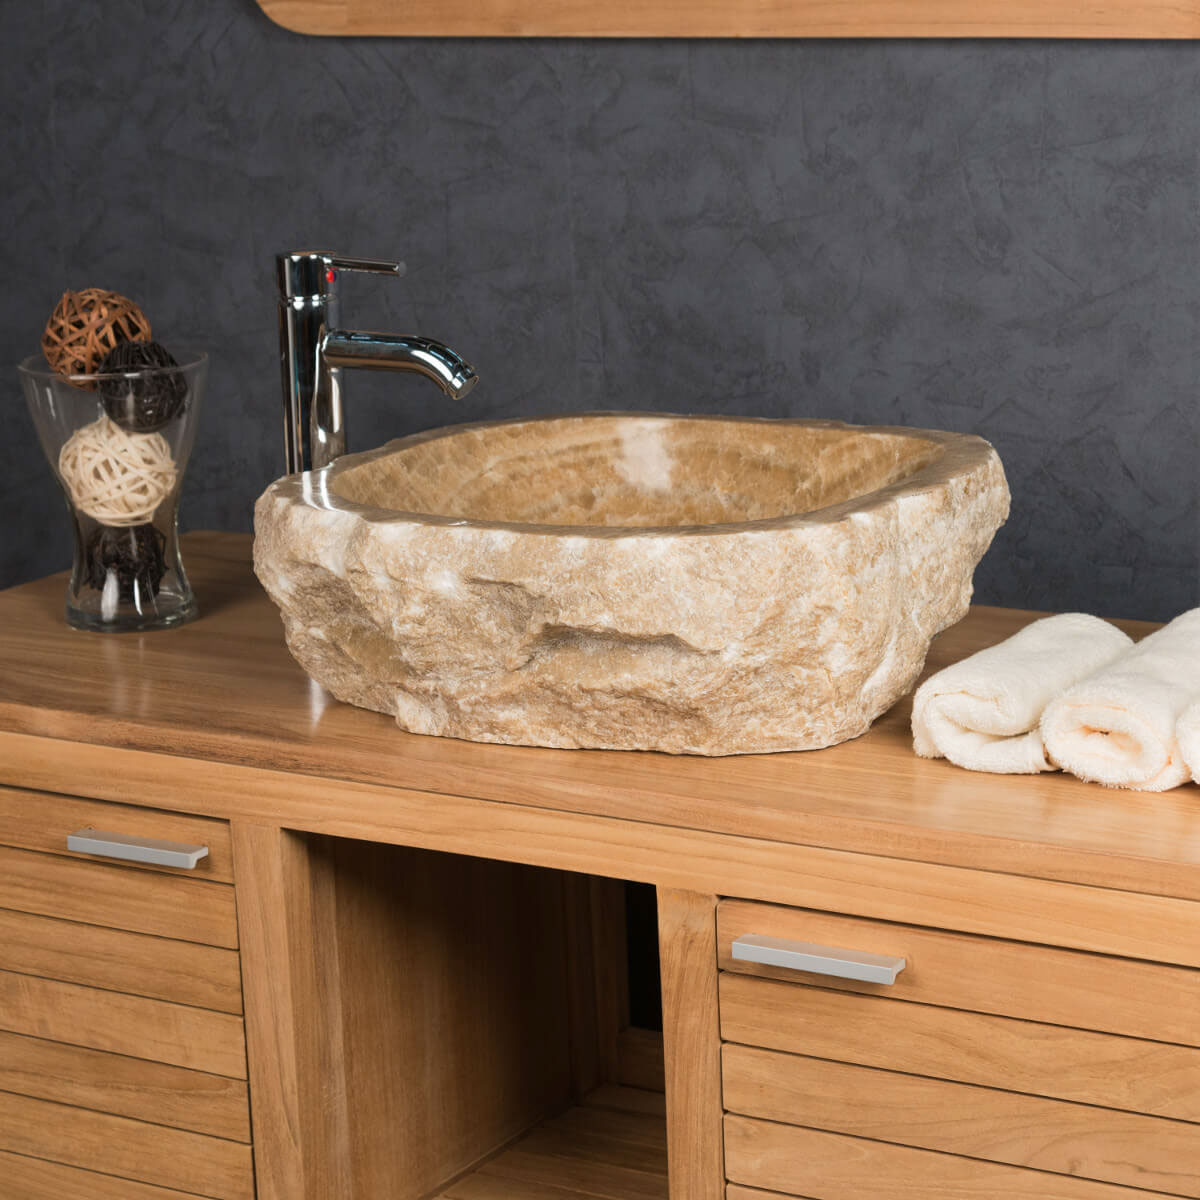 Vasque poser en pierre d 39 onyx l 40 45 cm for Salle de bain vocabulaire